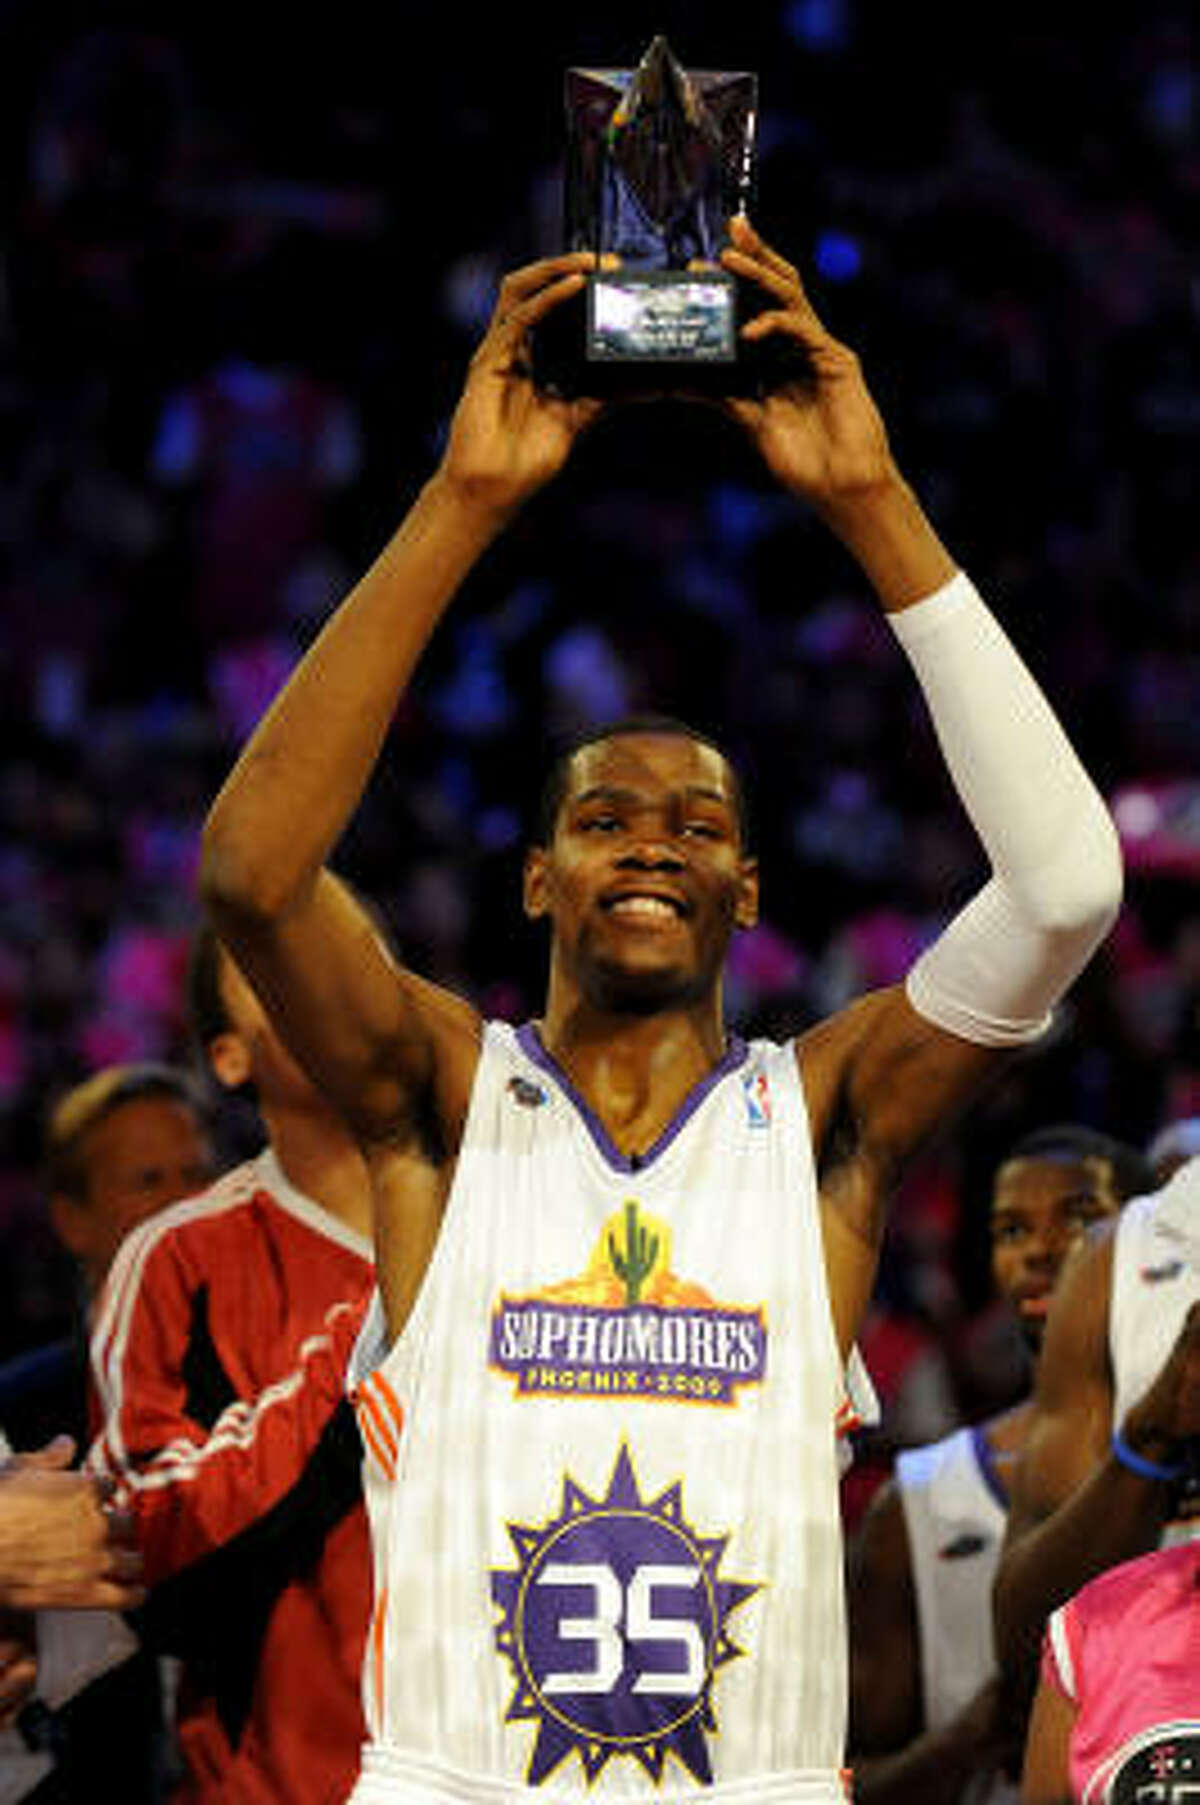 Oklahoma City Thunder sophomore guard Kevin Durant won the Rookie Challenge MVP after scoring a record-setting 46 points.